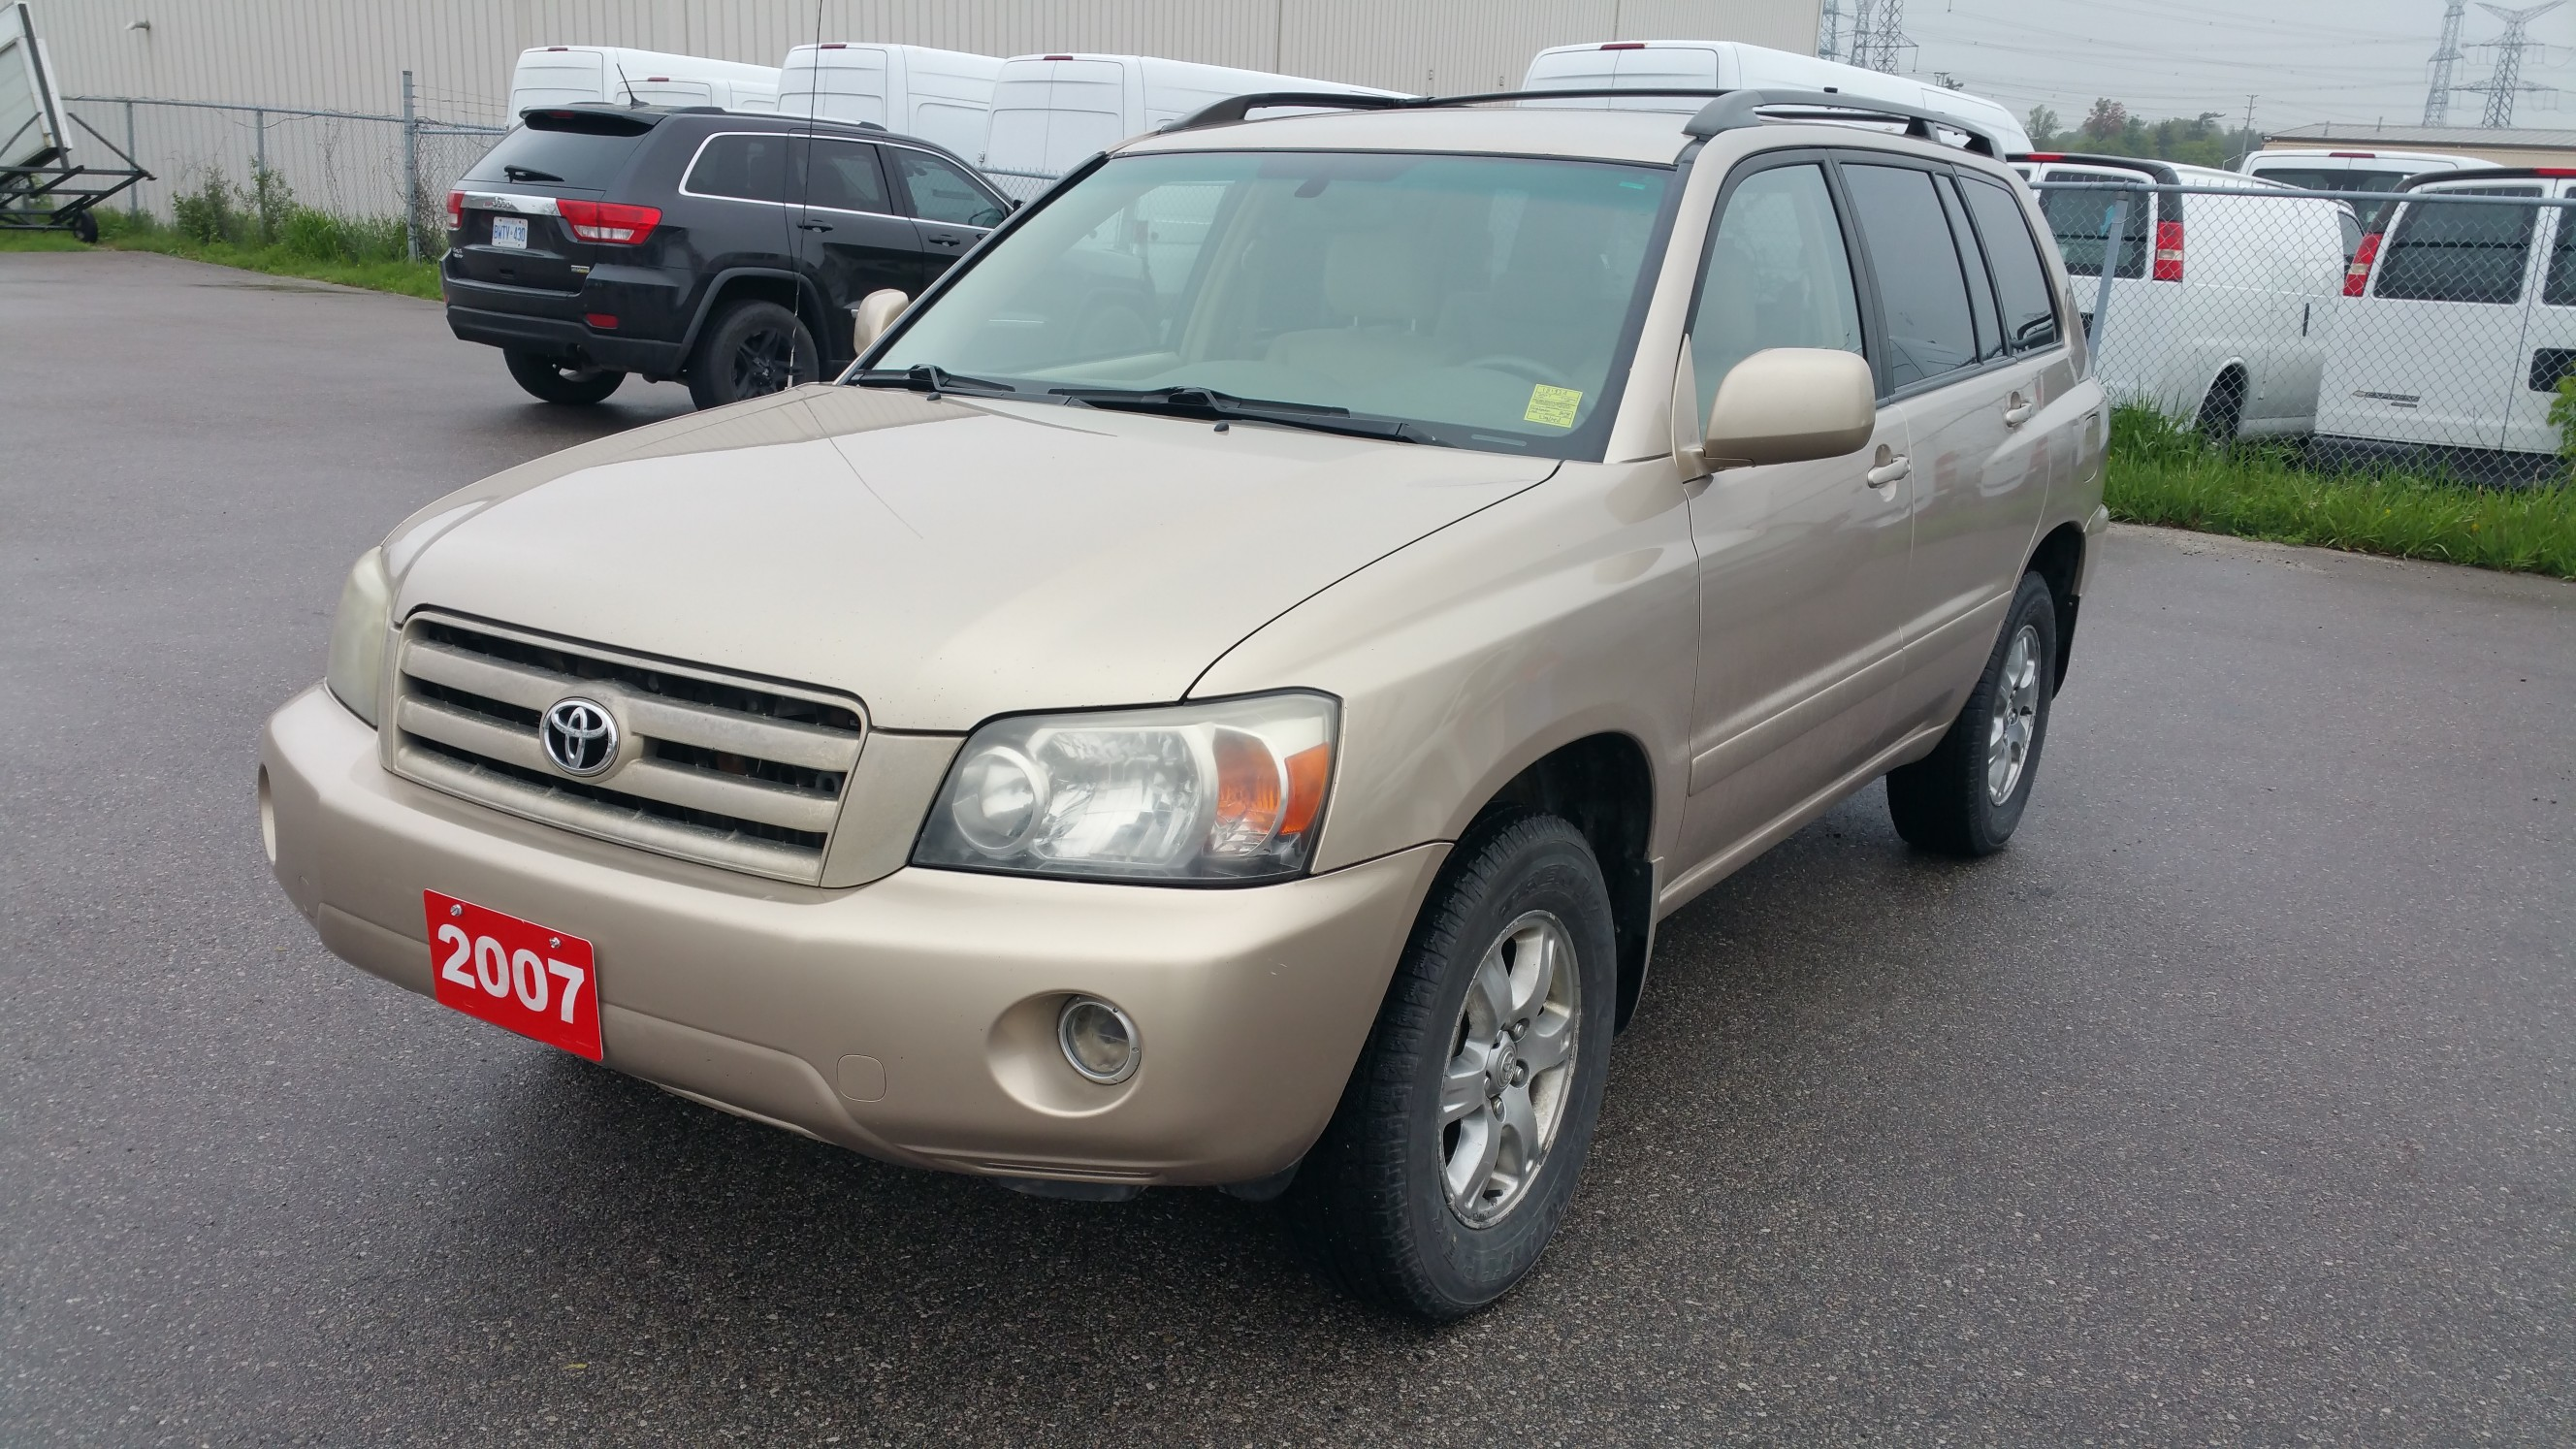 click all generation forum truck car hl toyota highlander forums version name and for mods views size the image to nation larger